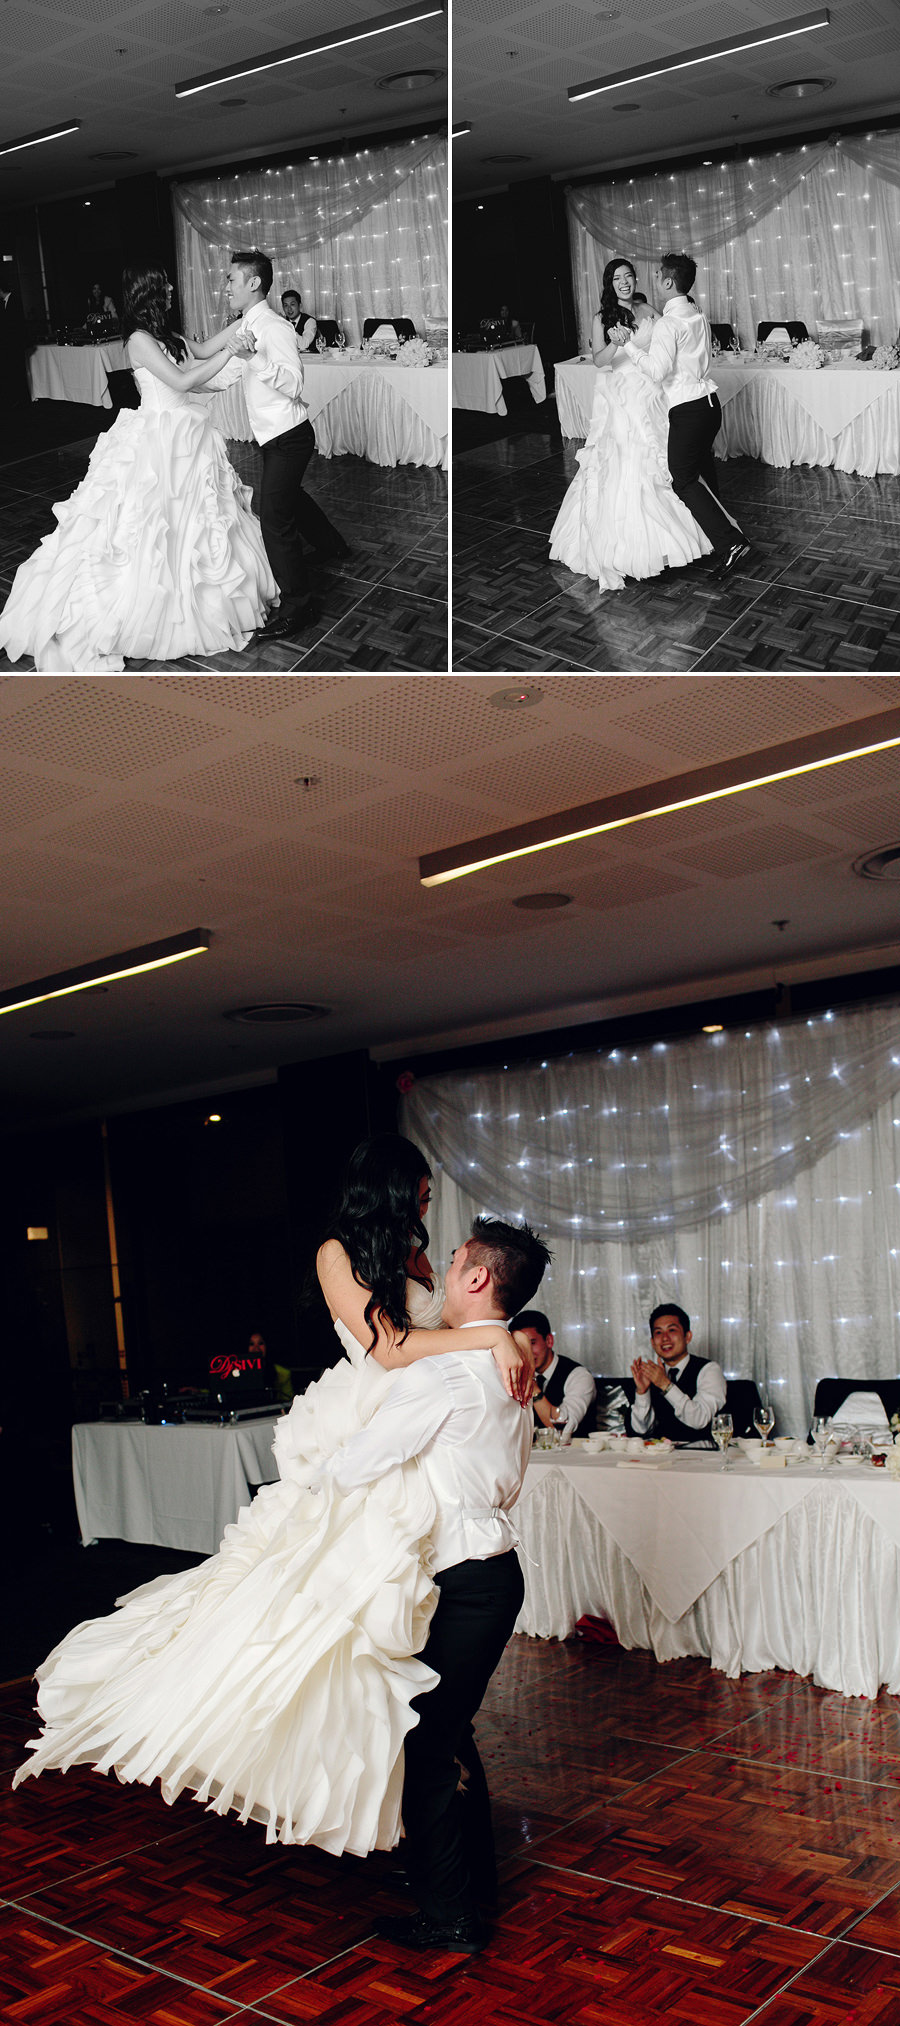 Parramatta Wedding Photographer: Bridal waltz